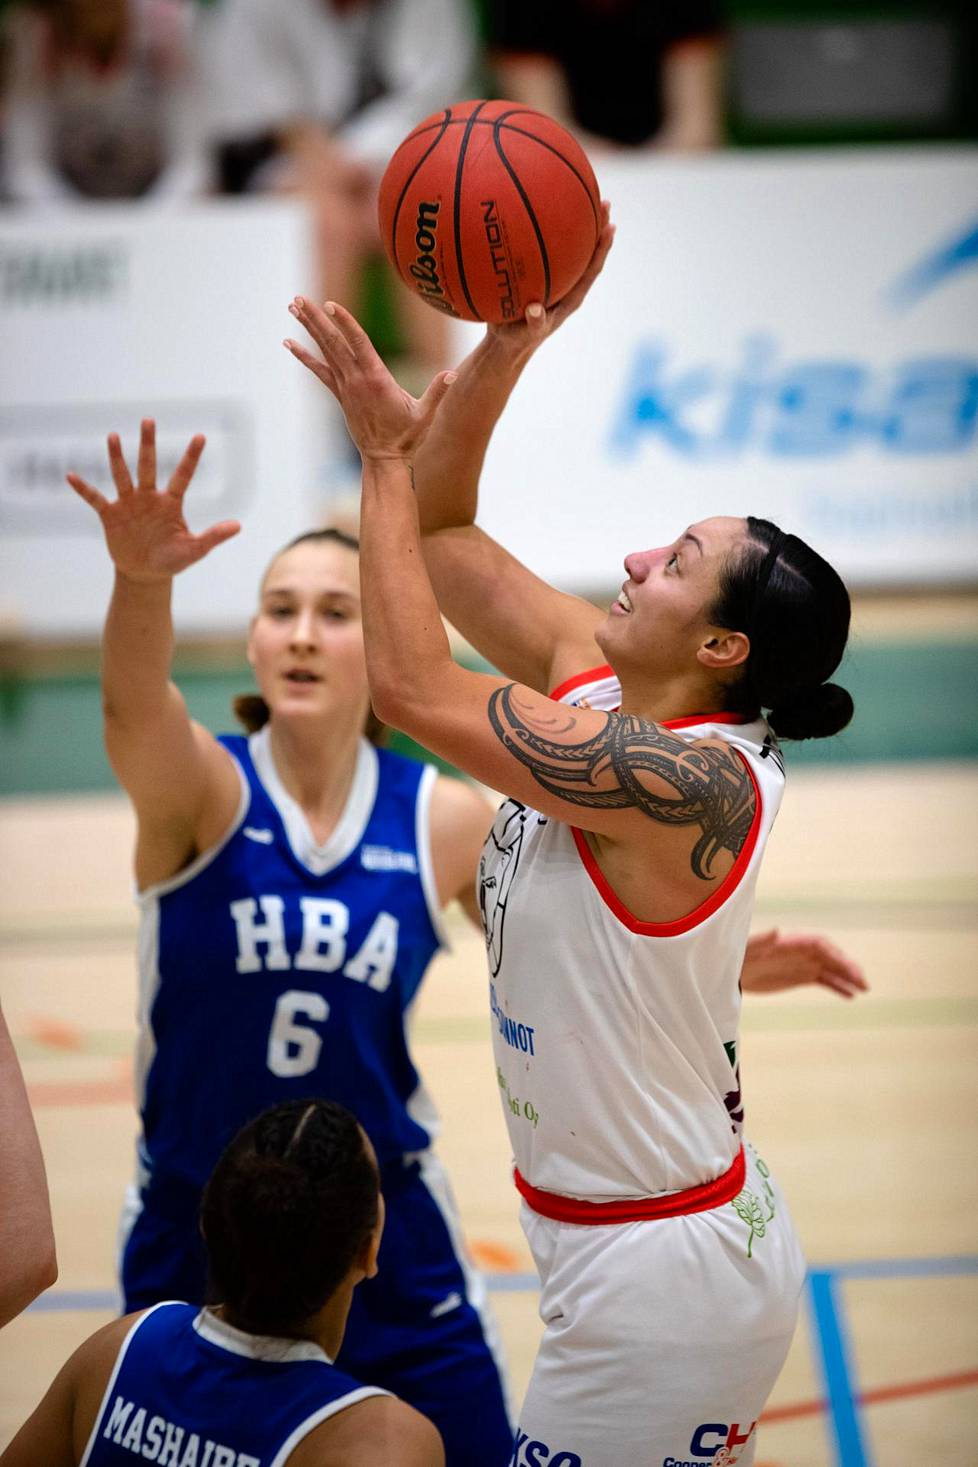 Venla Ulander and other young domestic players at HBA-Märsky had great difficulty stopping Kouvottari's Sarah Toeaina in a match on 14 January.  Toeaina eventually scored 37 points and 13 rebounds, and Kouvottaret took a clear win.